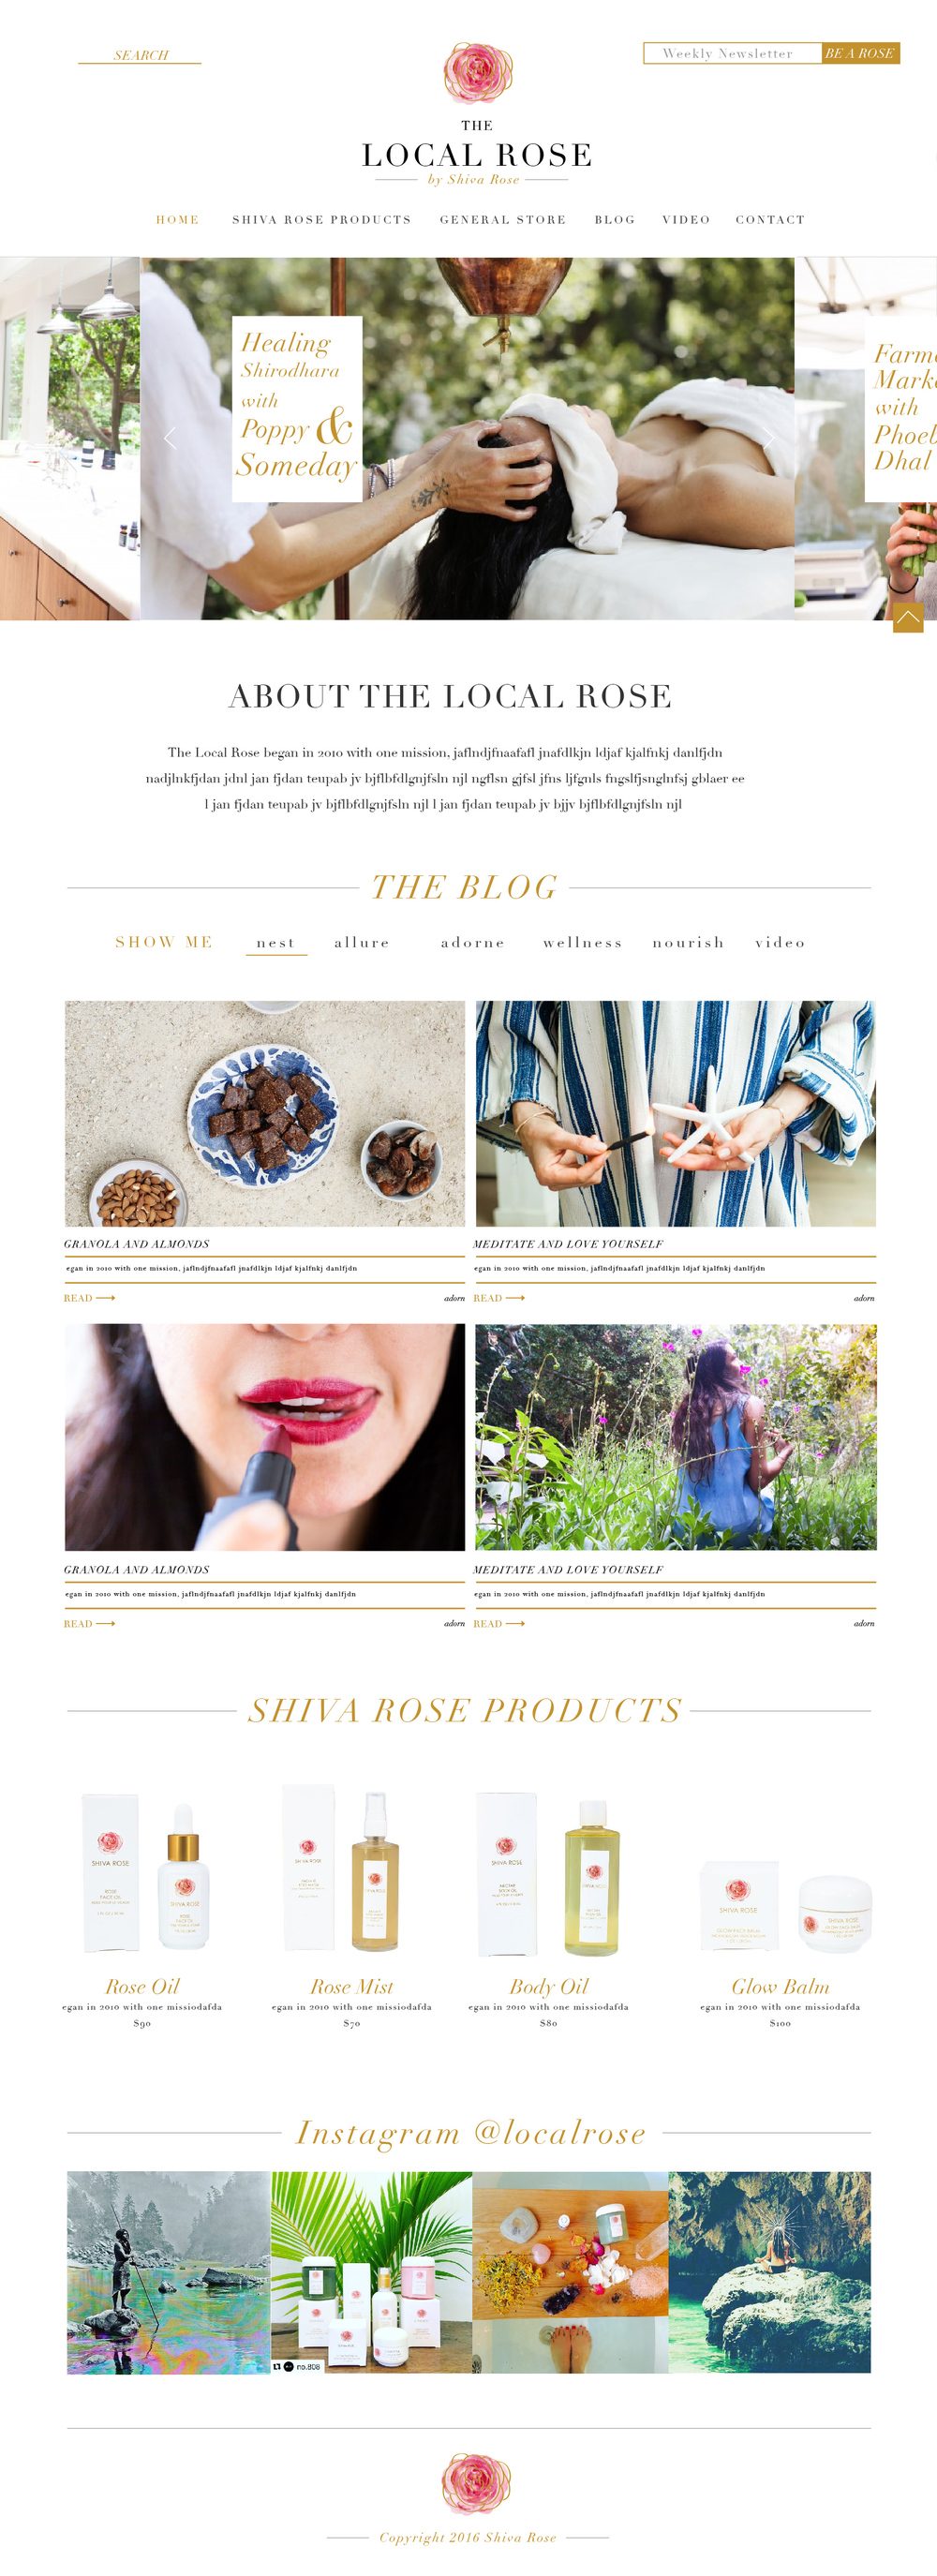 Shiva Rose Blog Design & Rebrand